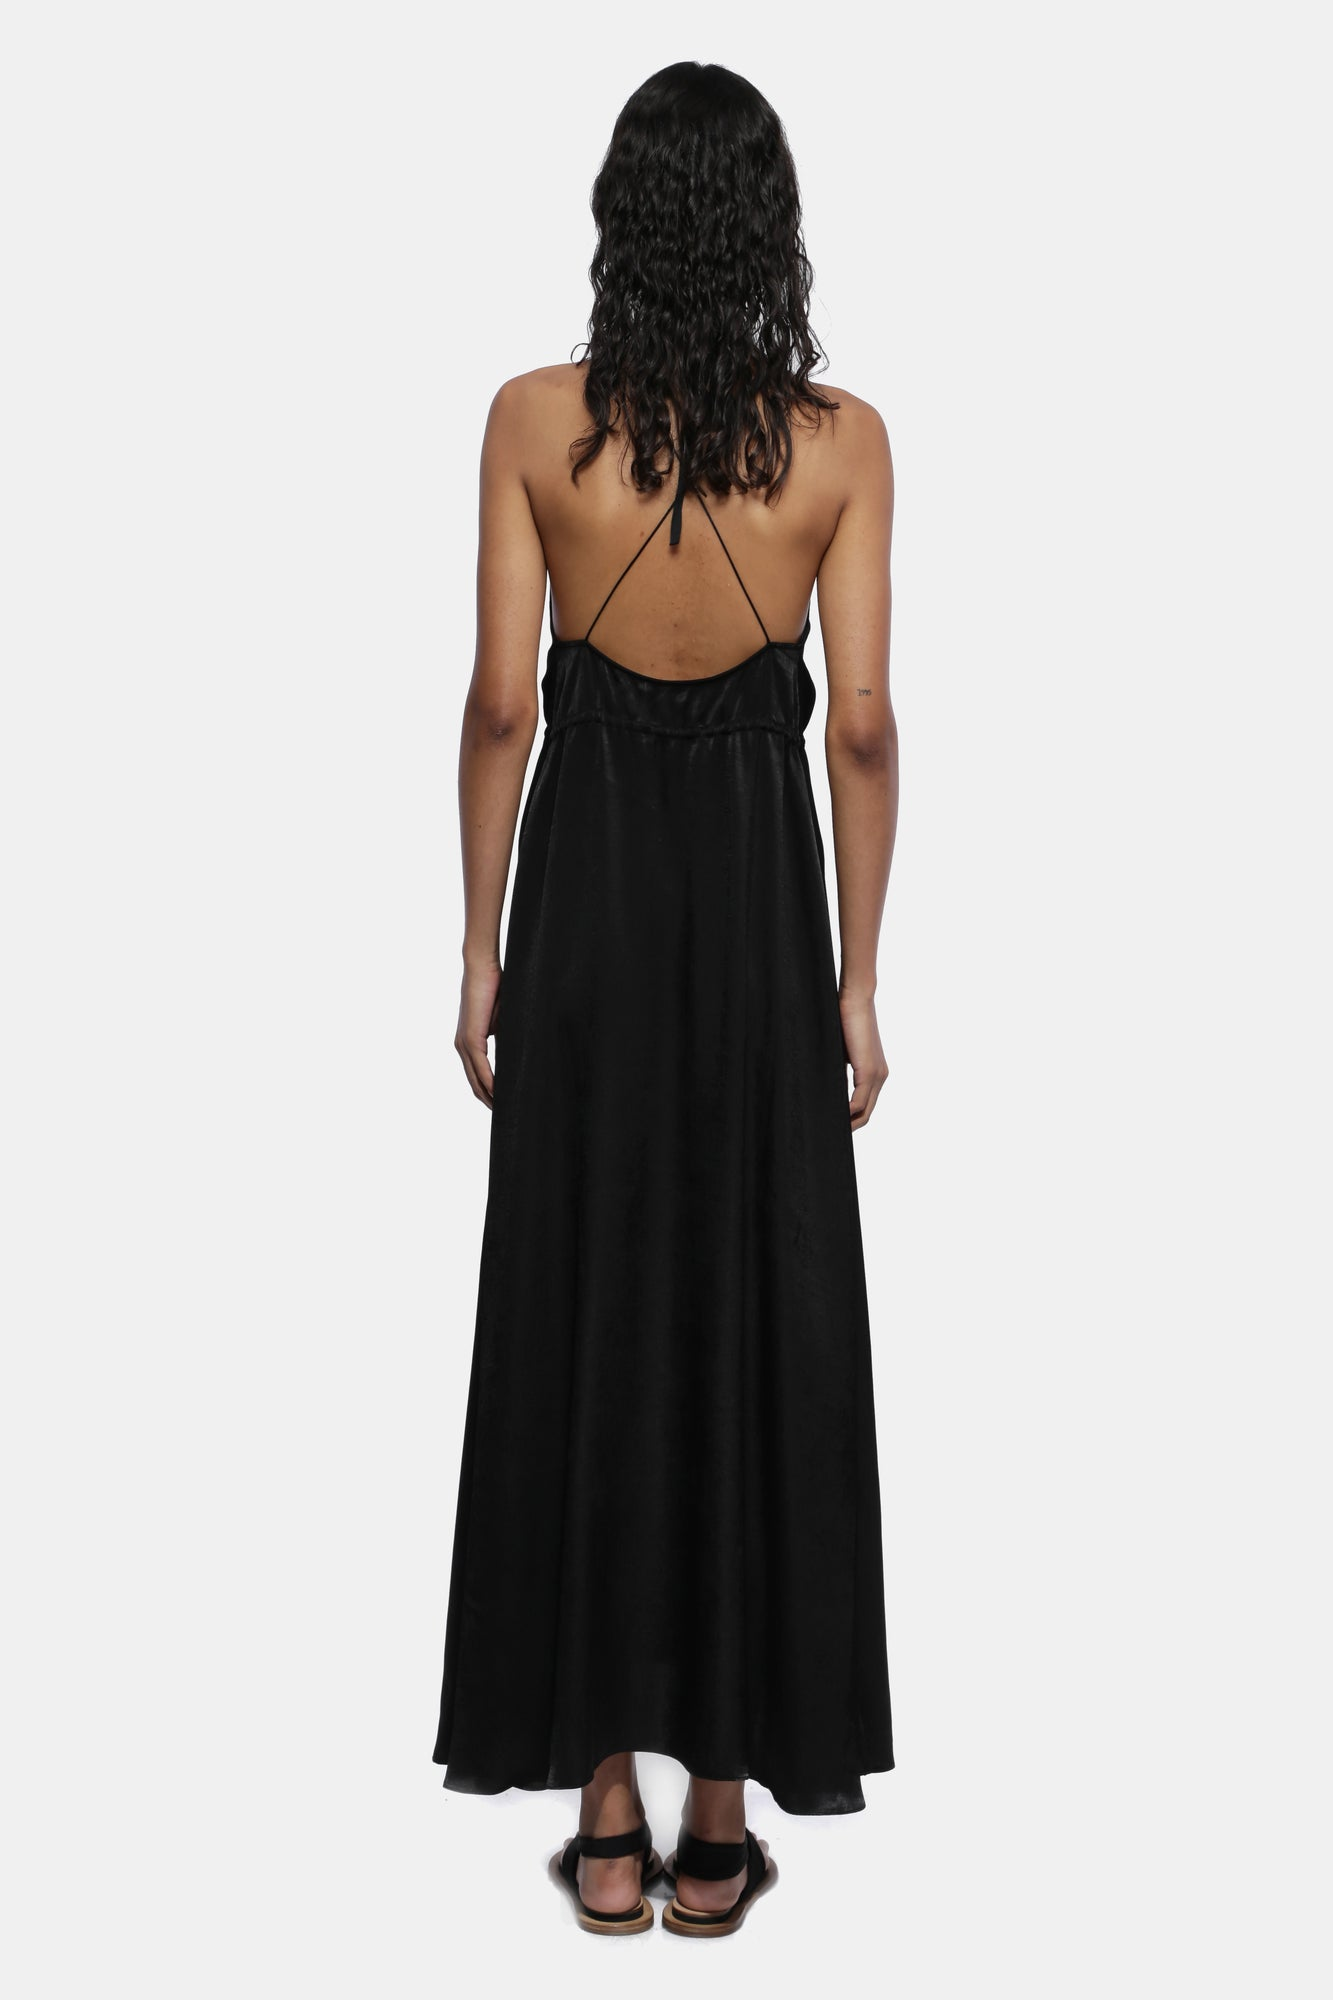 BLACK CIRCLE DRESS - Esteban Cortazar